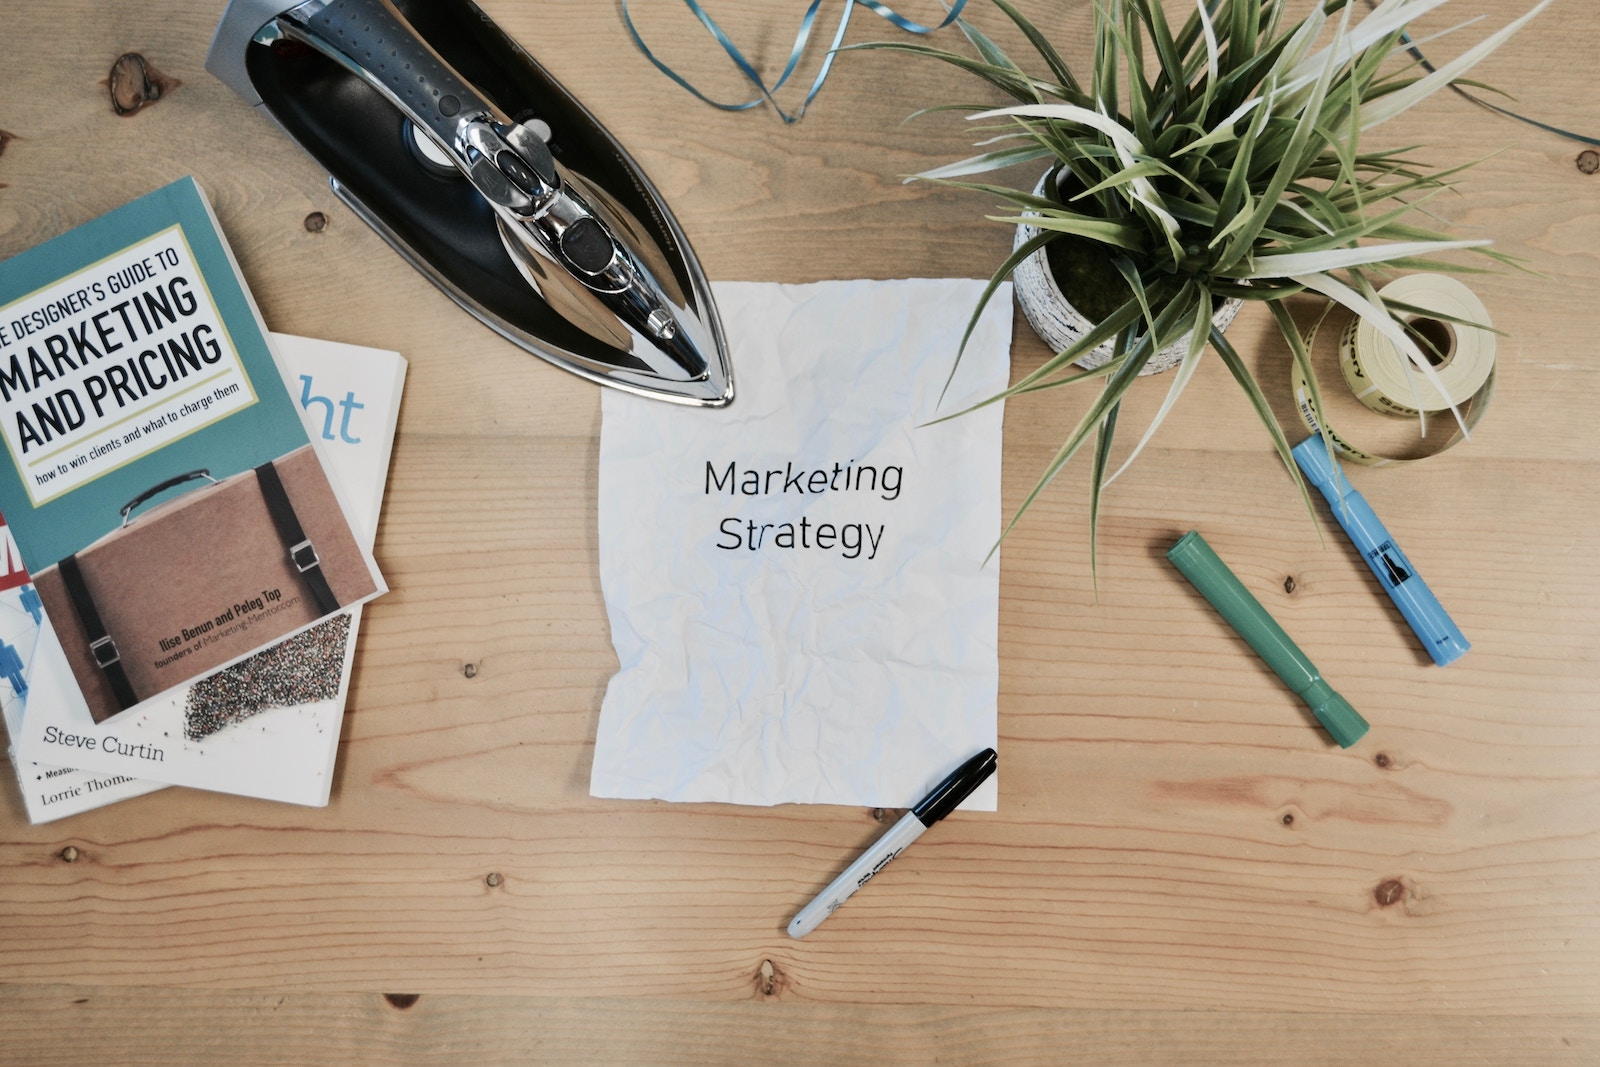 How to Implement Referral Marketing the Right Way